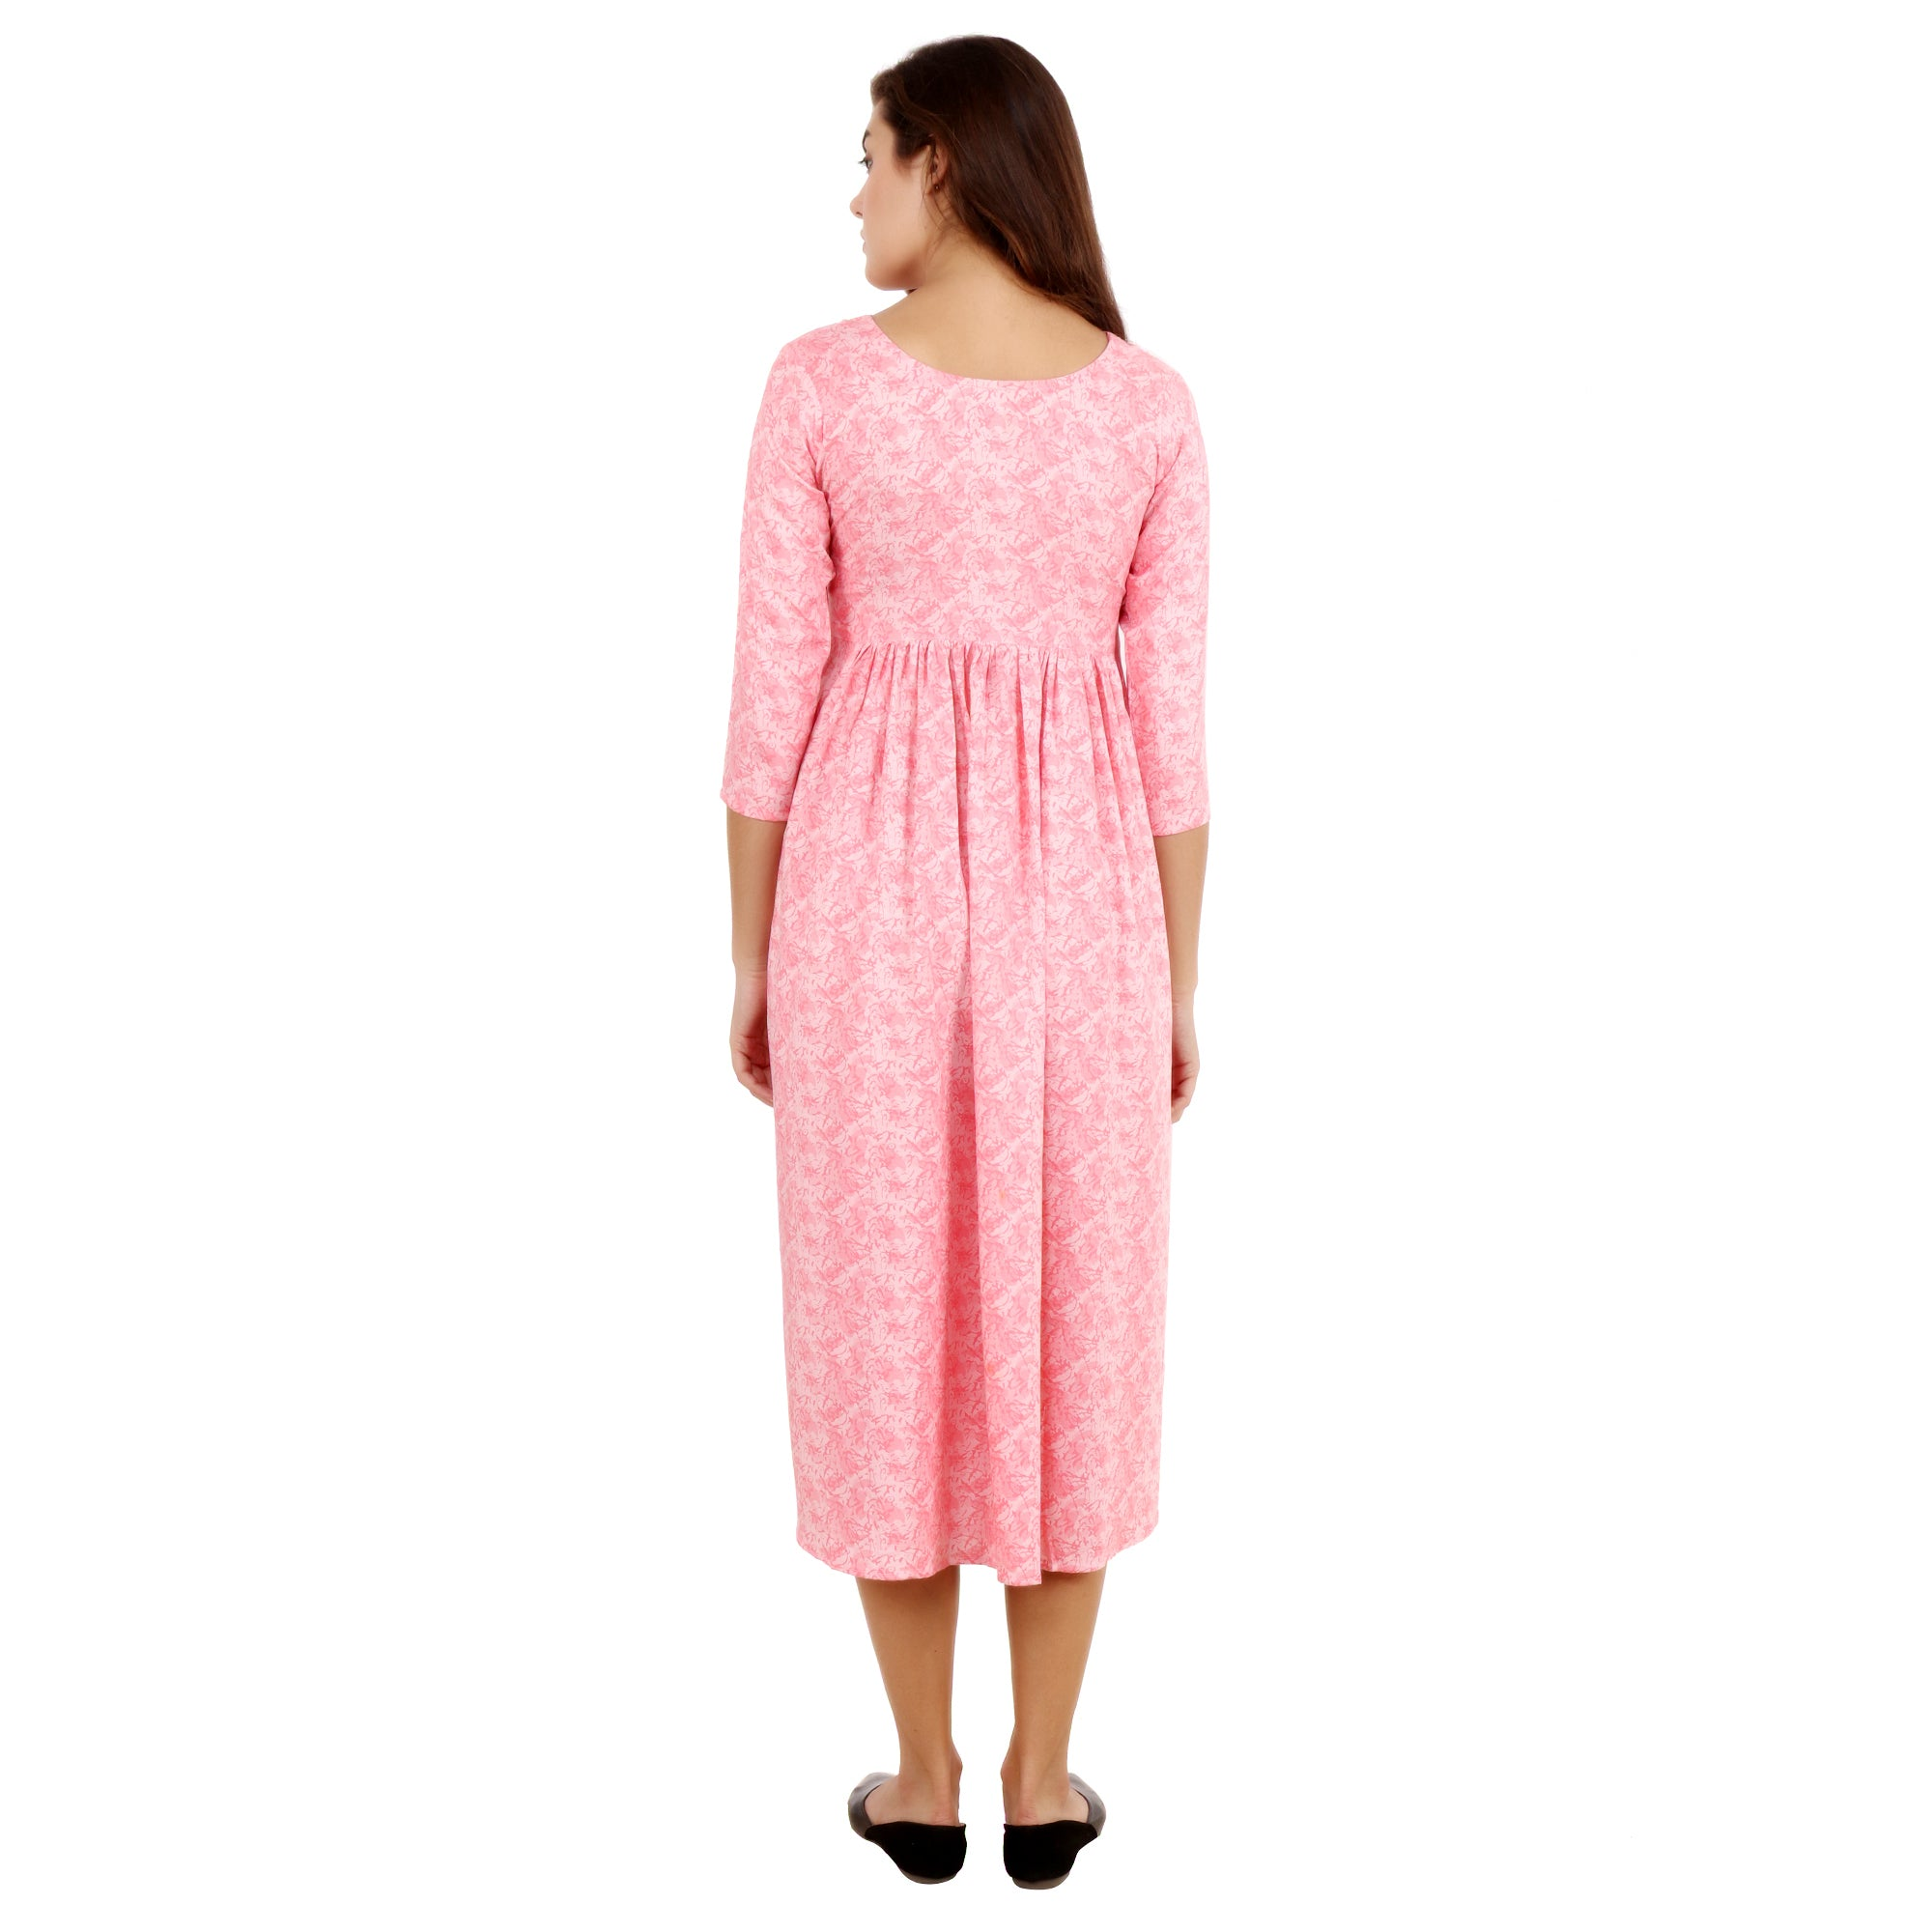 all size, best online store, breathable, calf length, comfortable, DRESS, flare, floral, knee length, maternity, pink, plus size, pregnancy, print, printed, rayon, reasonable price, skin frie